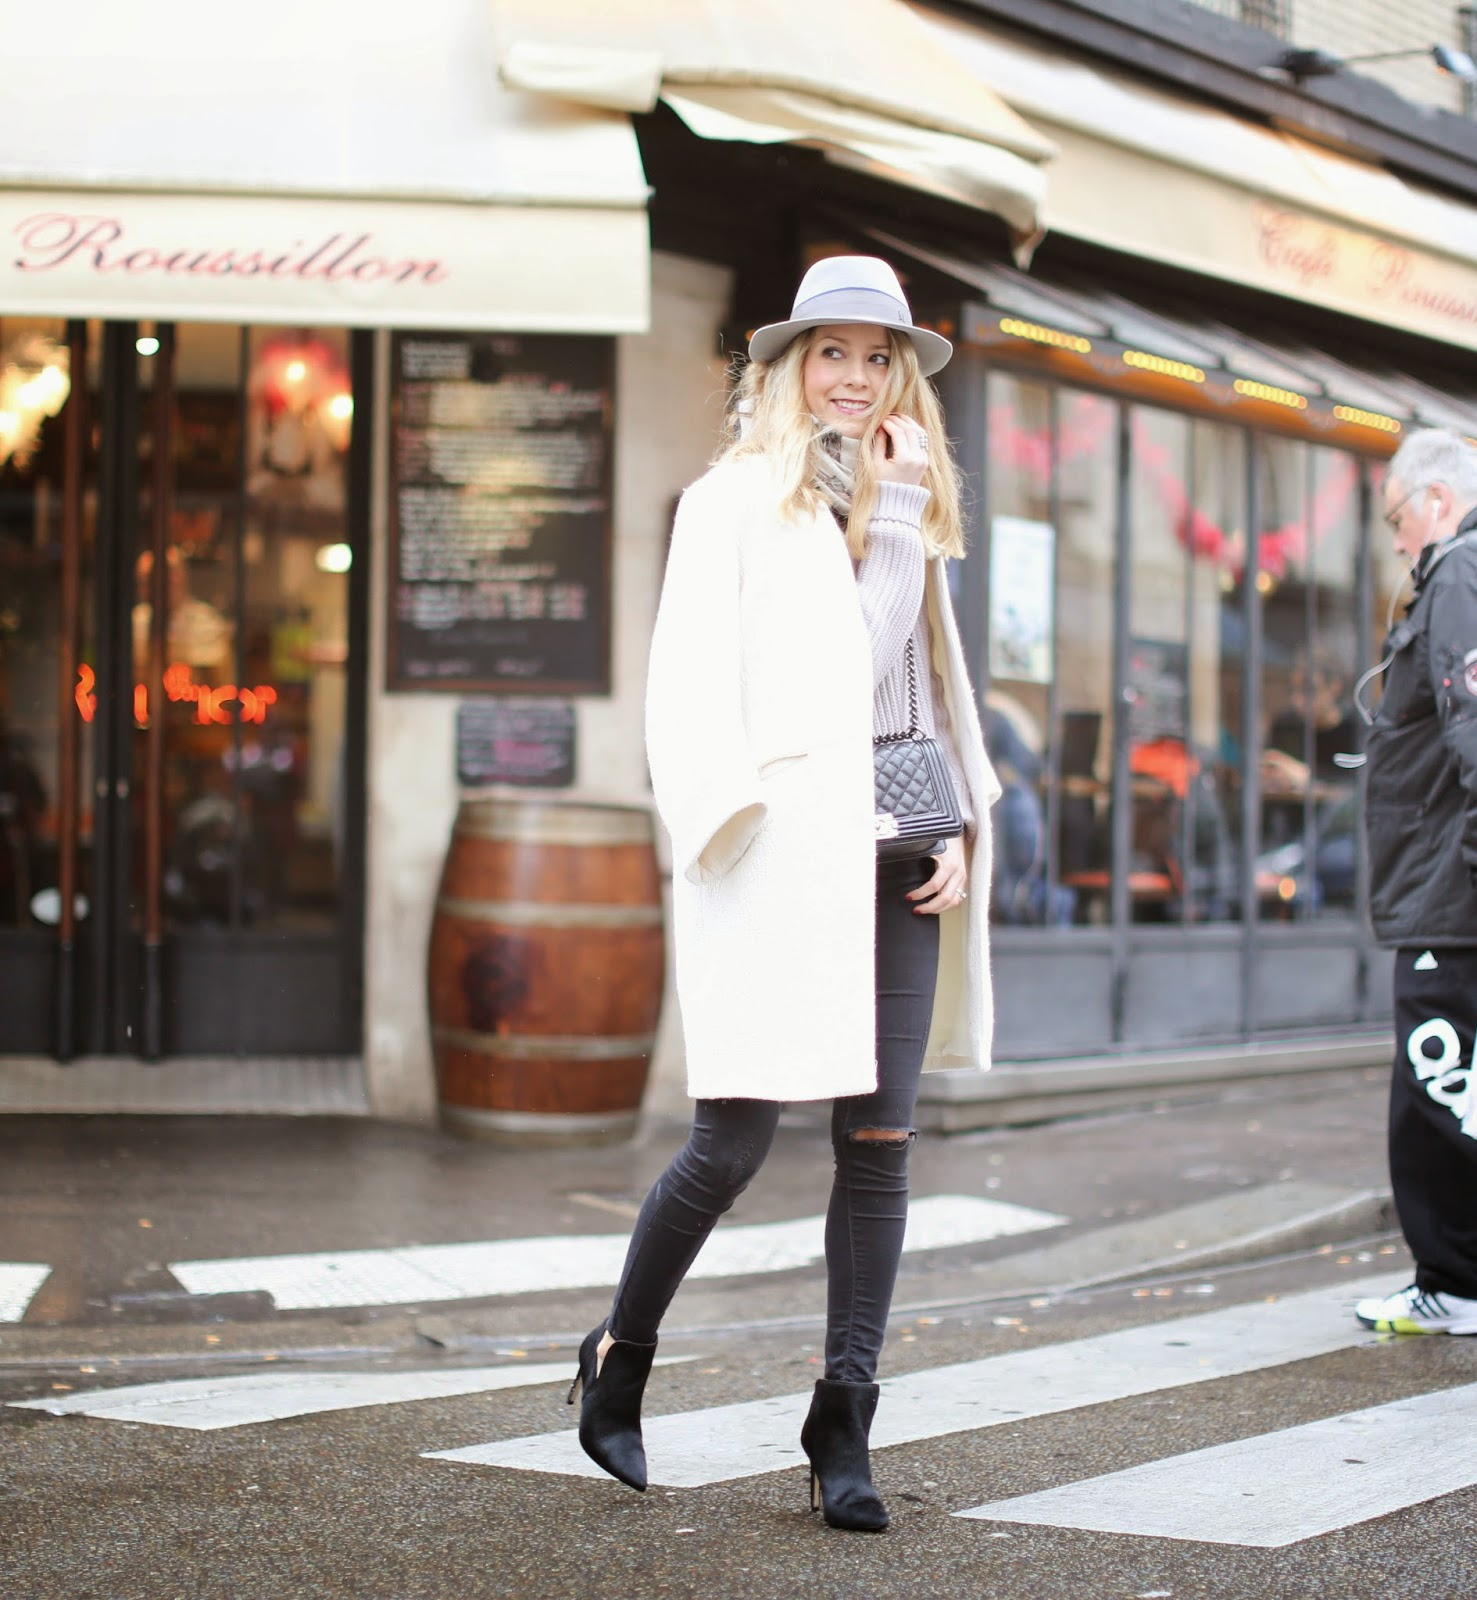 paris, streetstyle, zara, topshop, maison michel, hermès, chanel, fashion blogger